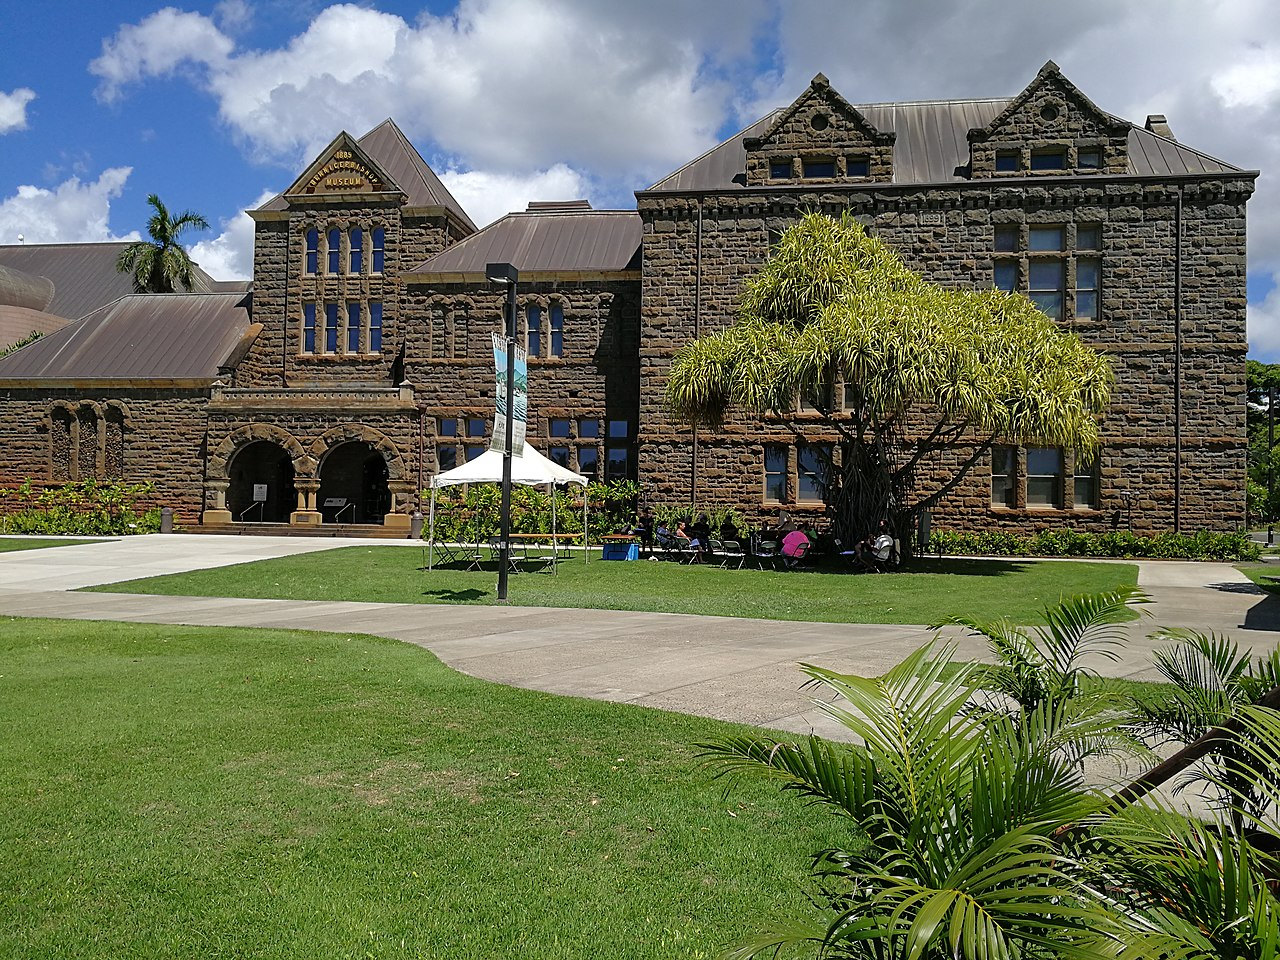 Bishop Museum - Best Place to Visit and Things to Do in Honolulu in Hawaii